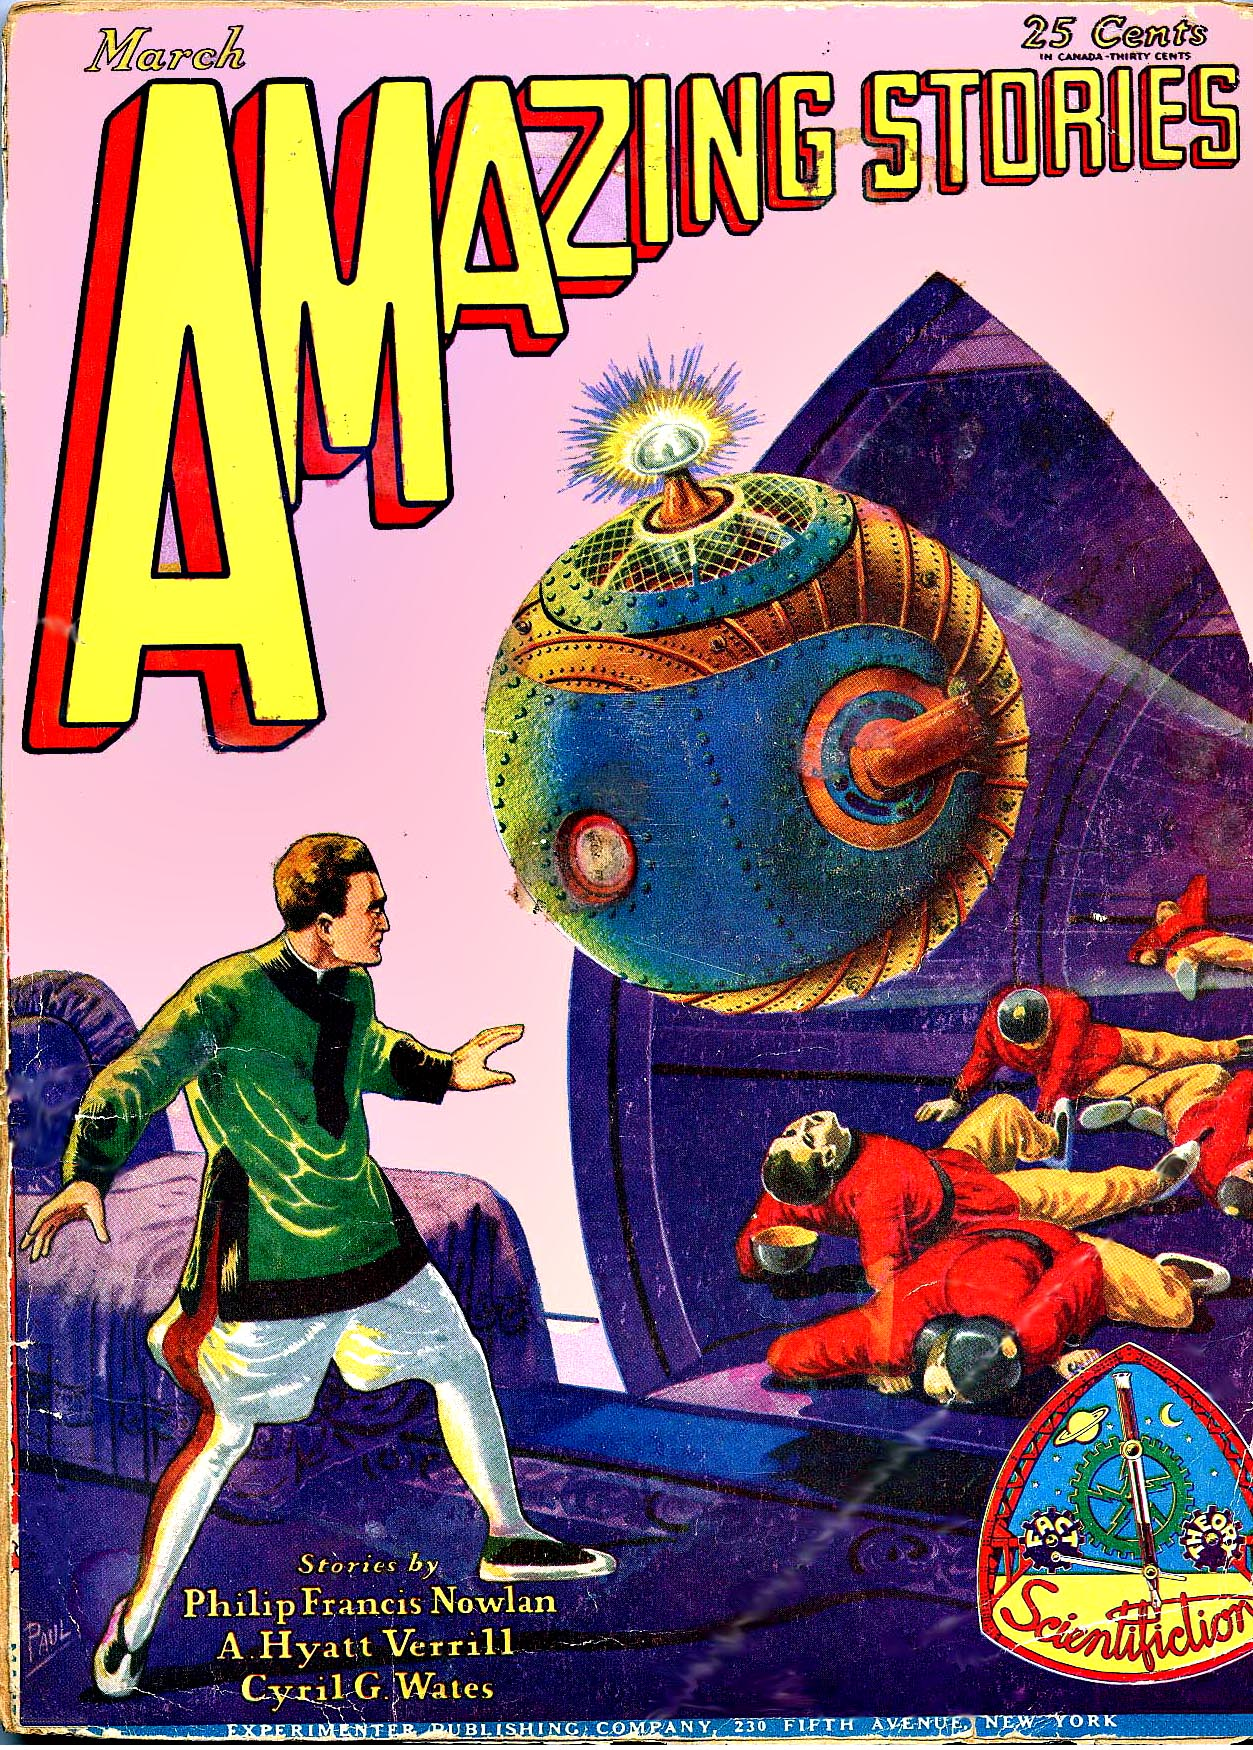 Amazing Stories Volume 21 Number 06: File:Amazing Stories March 1929.jpg